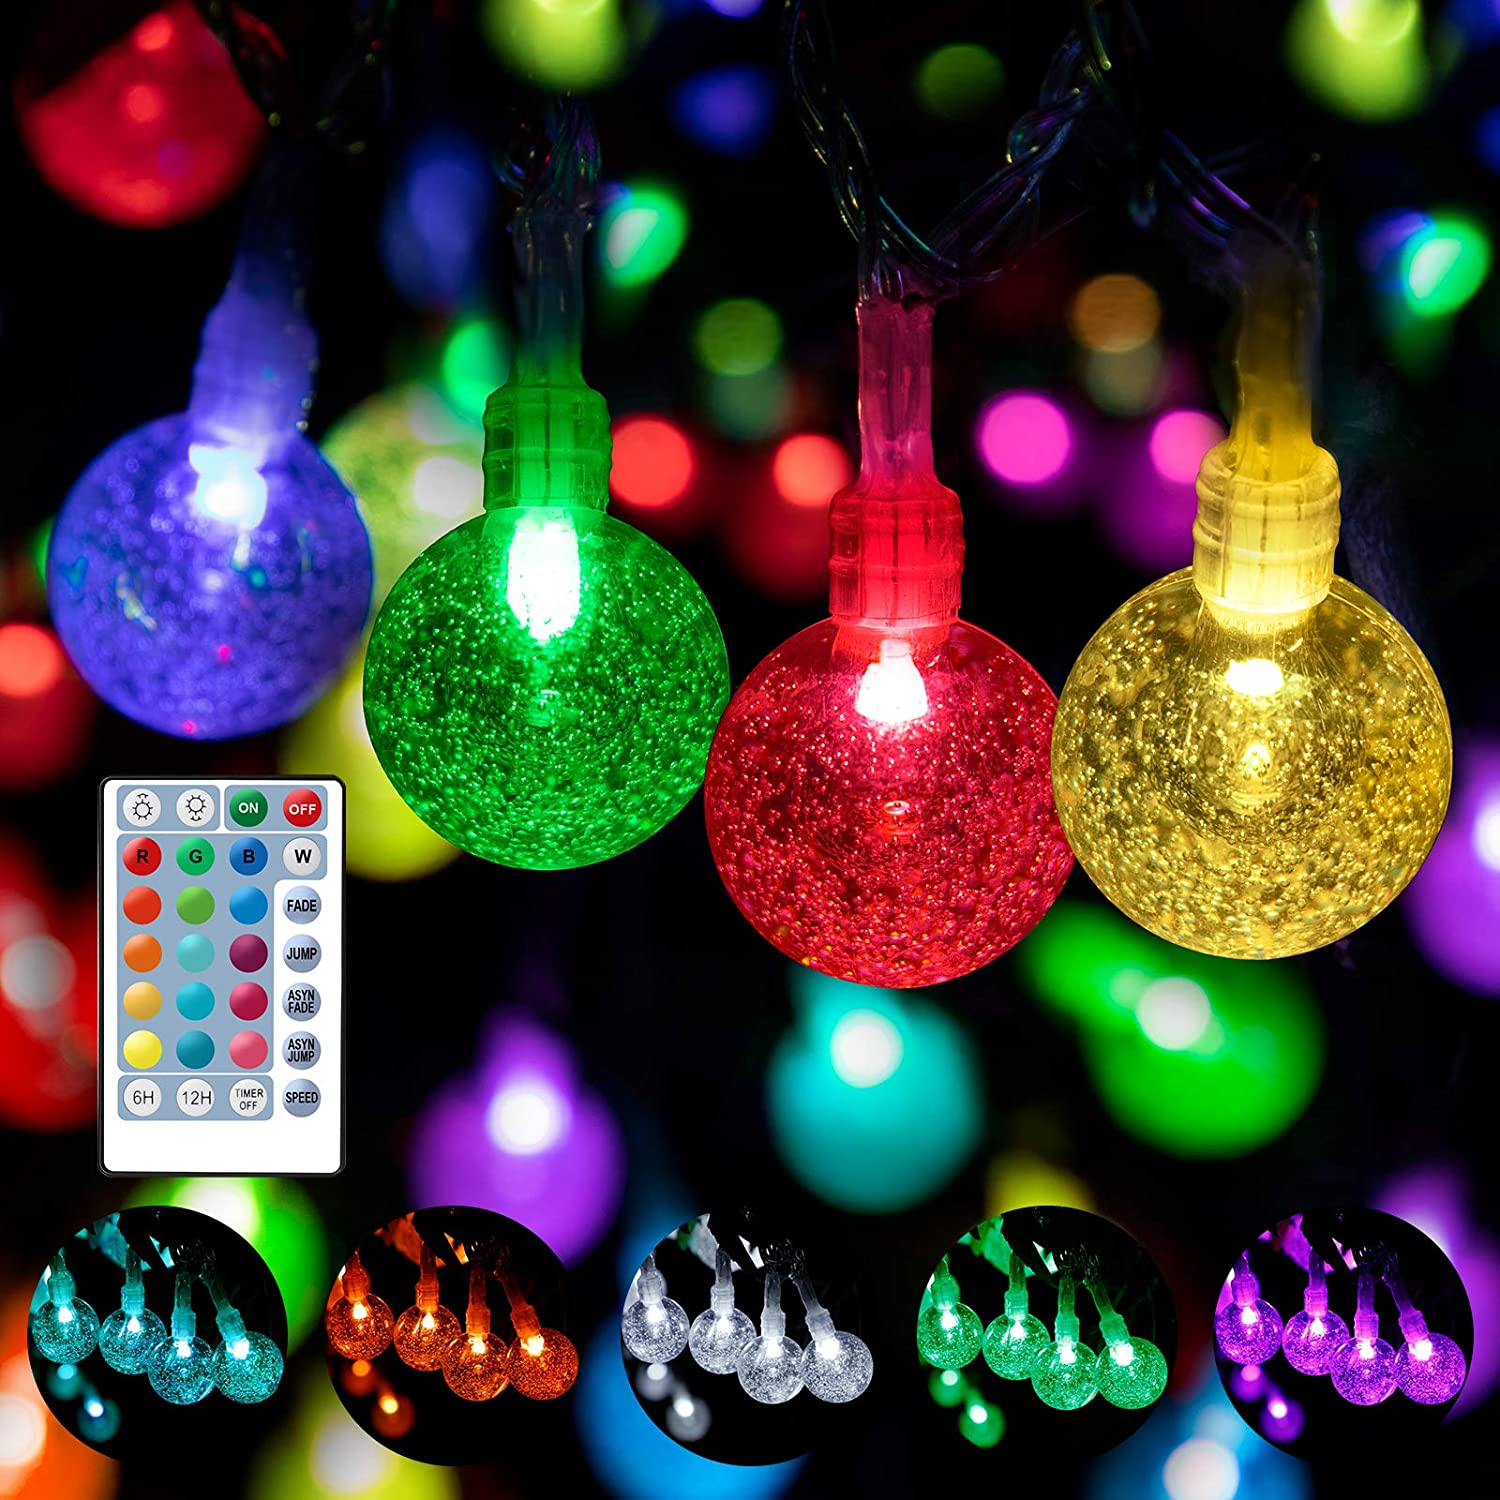 WENFENG 80FT 125 LED 16 Color Waterproof Globe Outdoor String Lights -Indoor Bedroom Crystal Ball Fairy Lights with Remote -Patio Garden Wedding Party Christmas Decorations (RGB&Warm White)